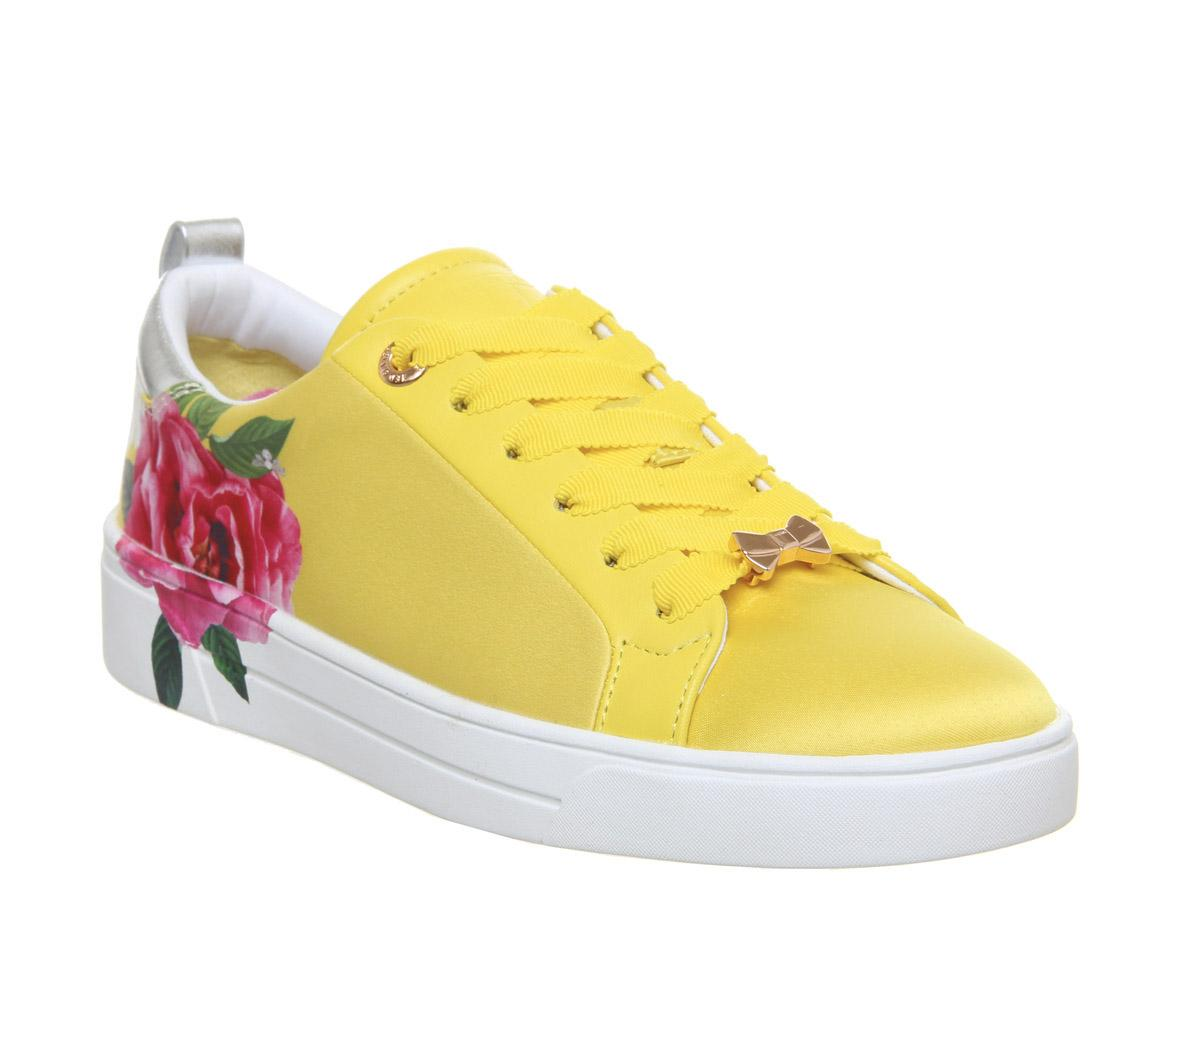 Ted Baker Rialy Sneakers Magnificent